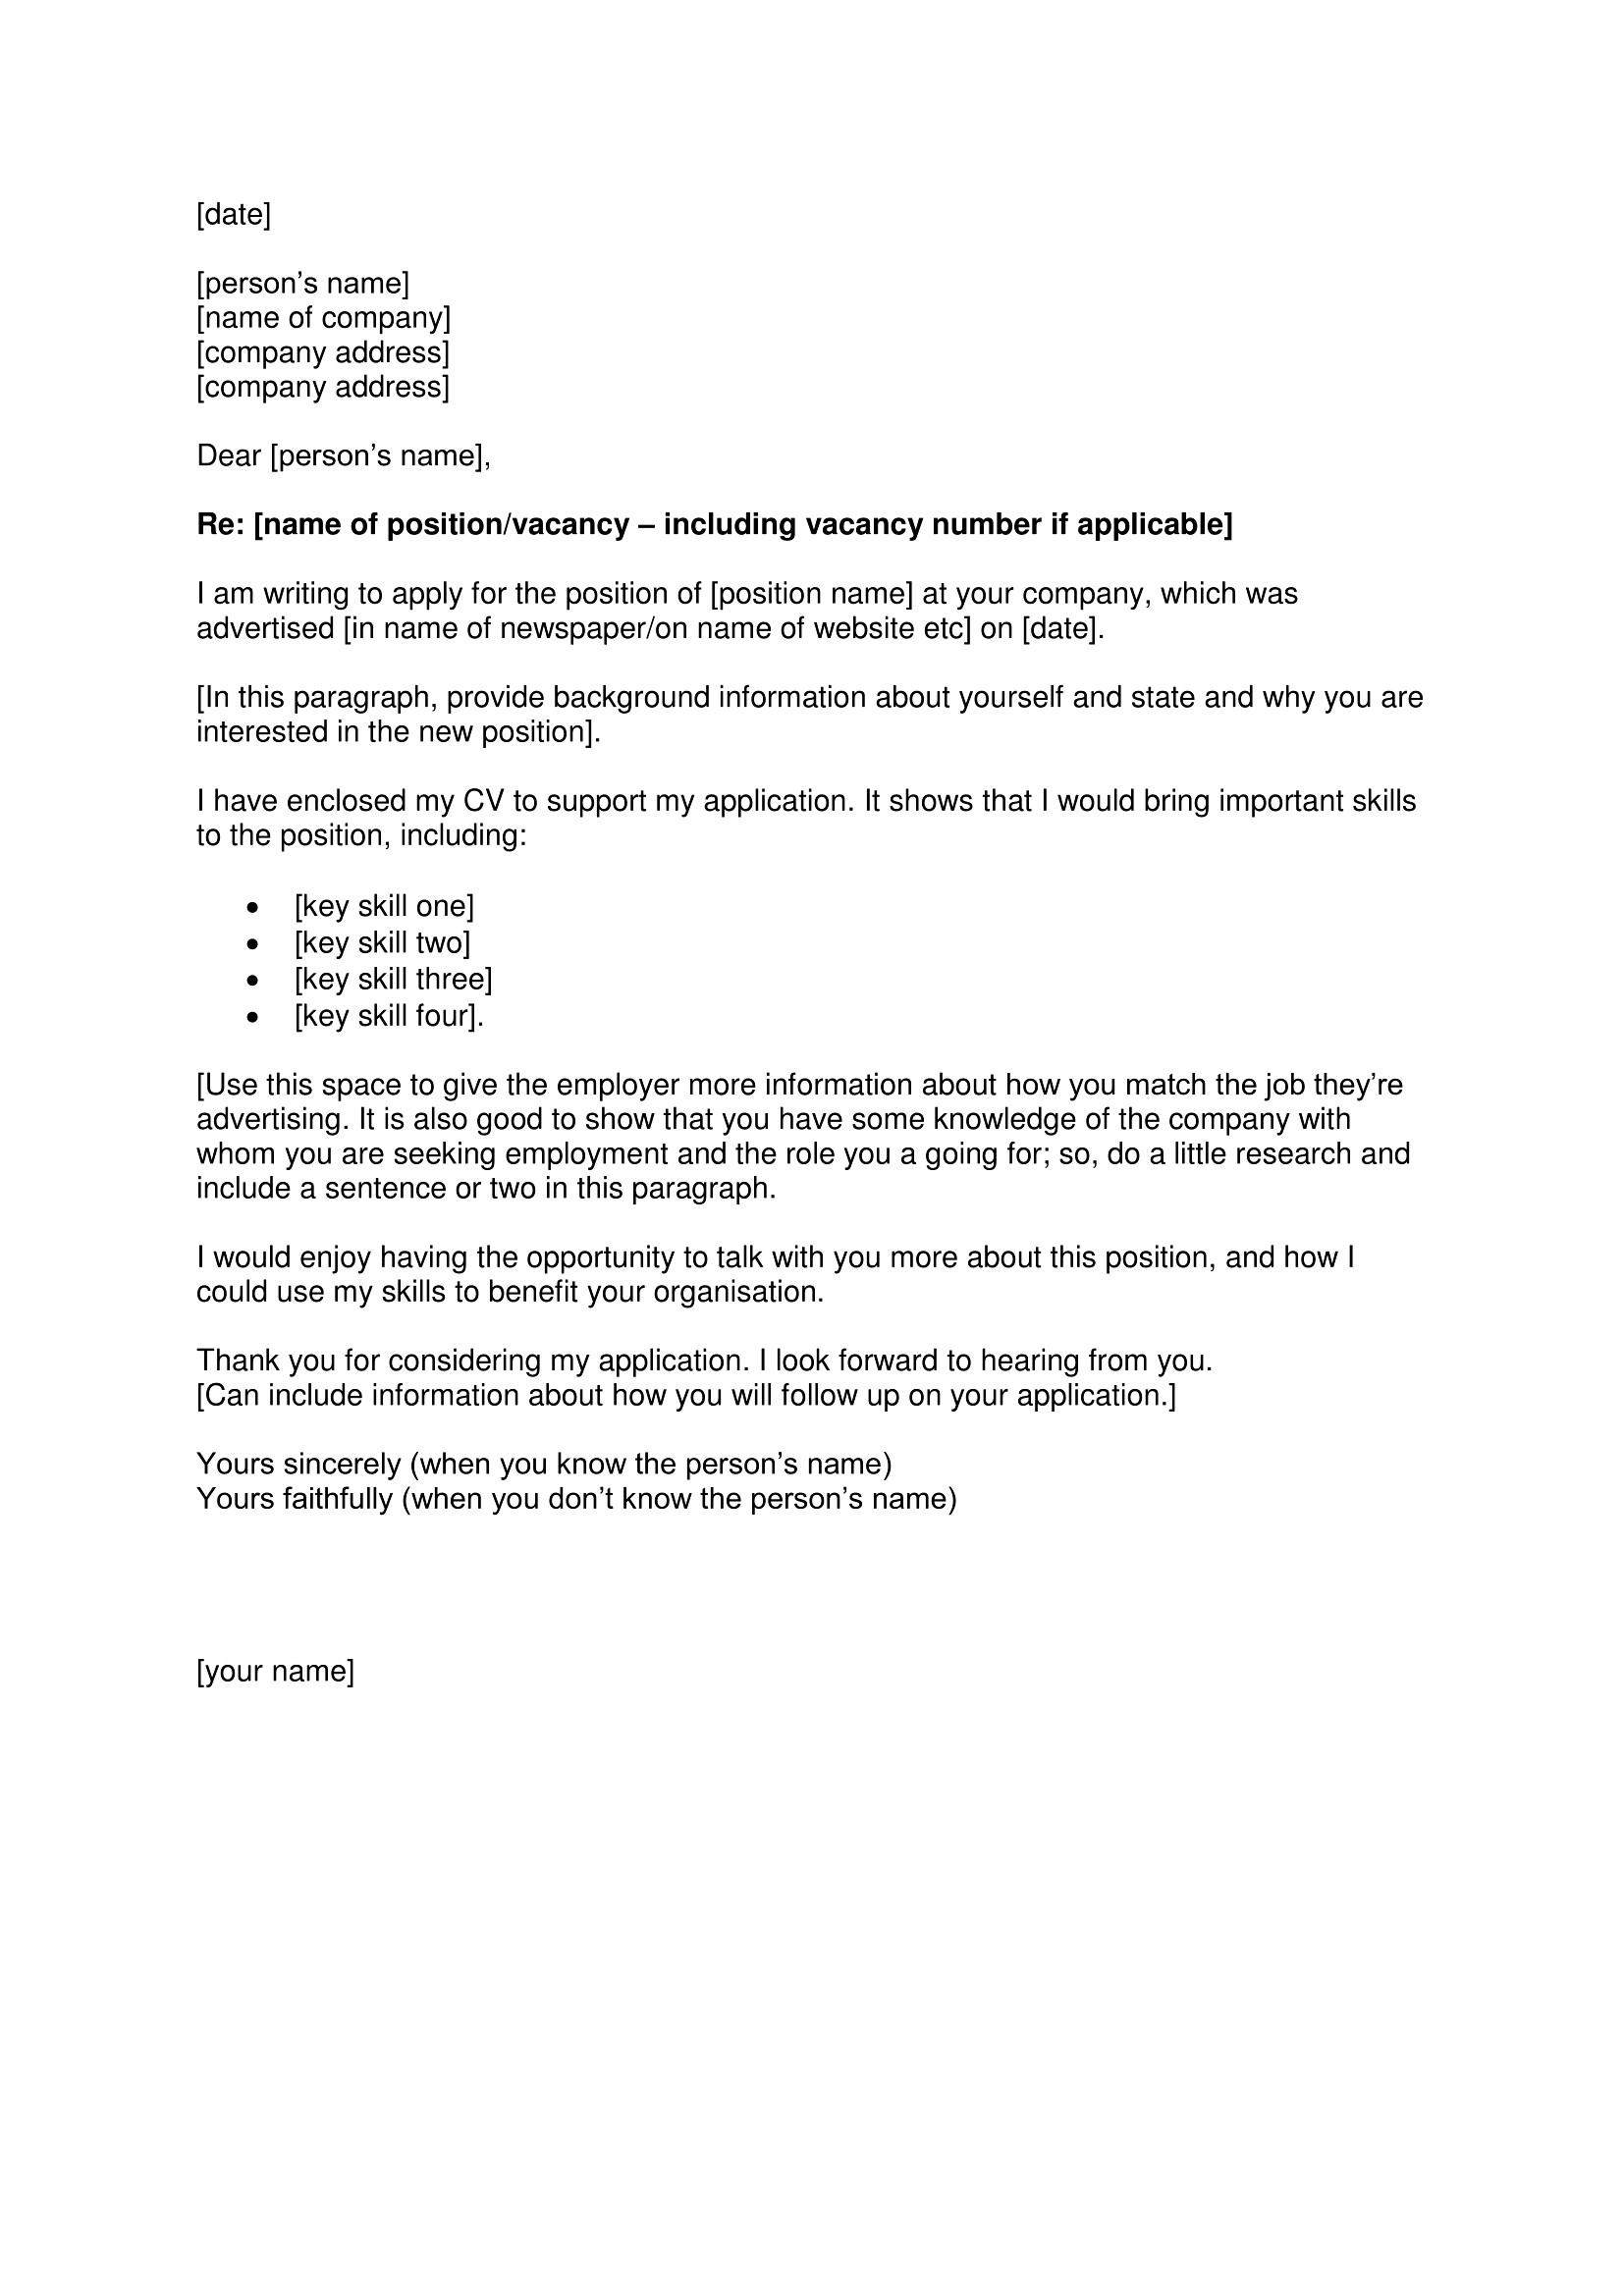 sample expression of interest letter for a position